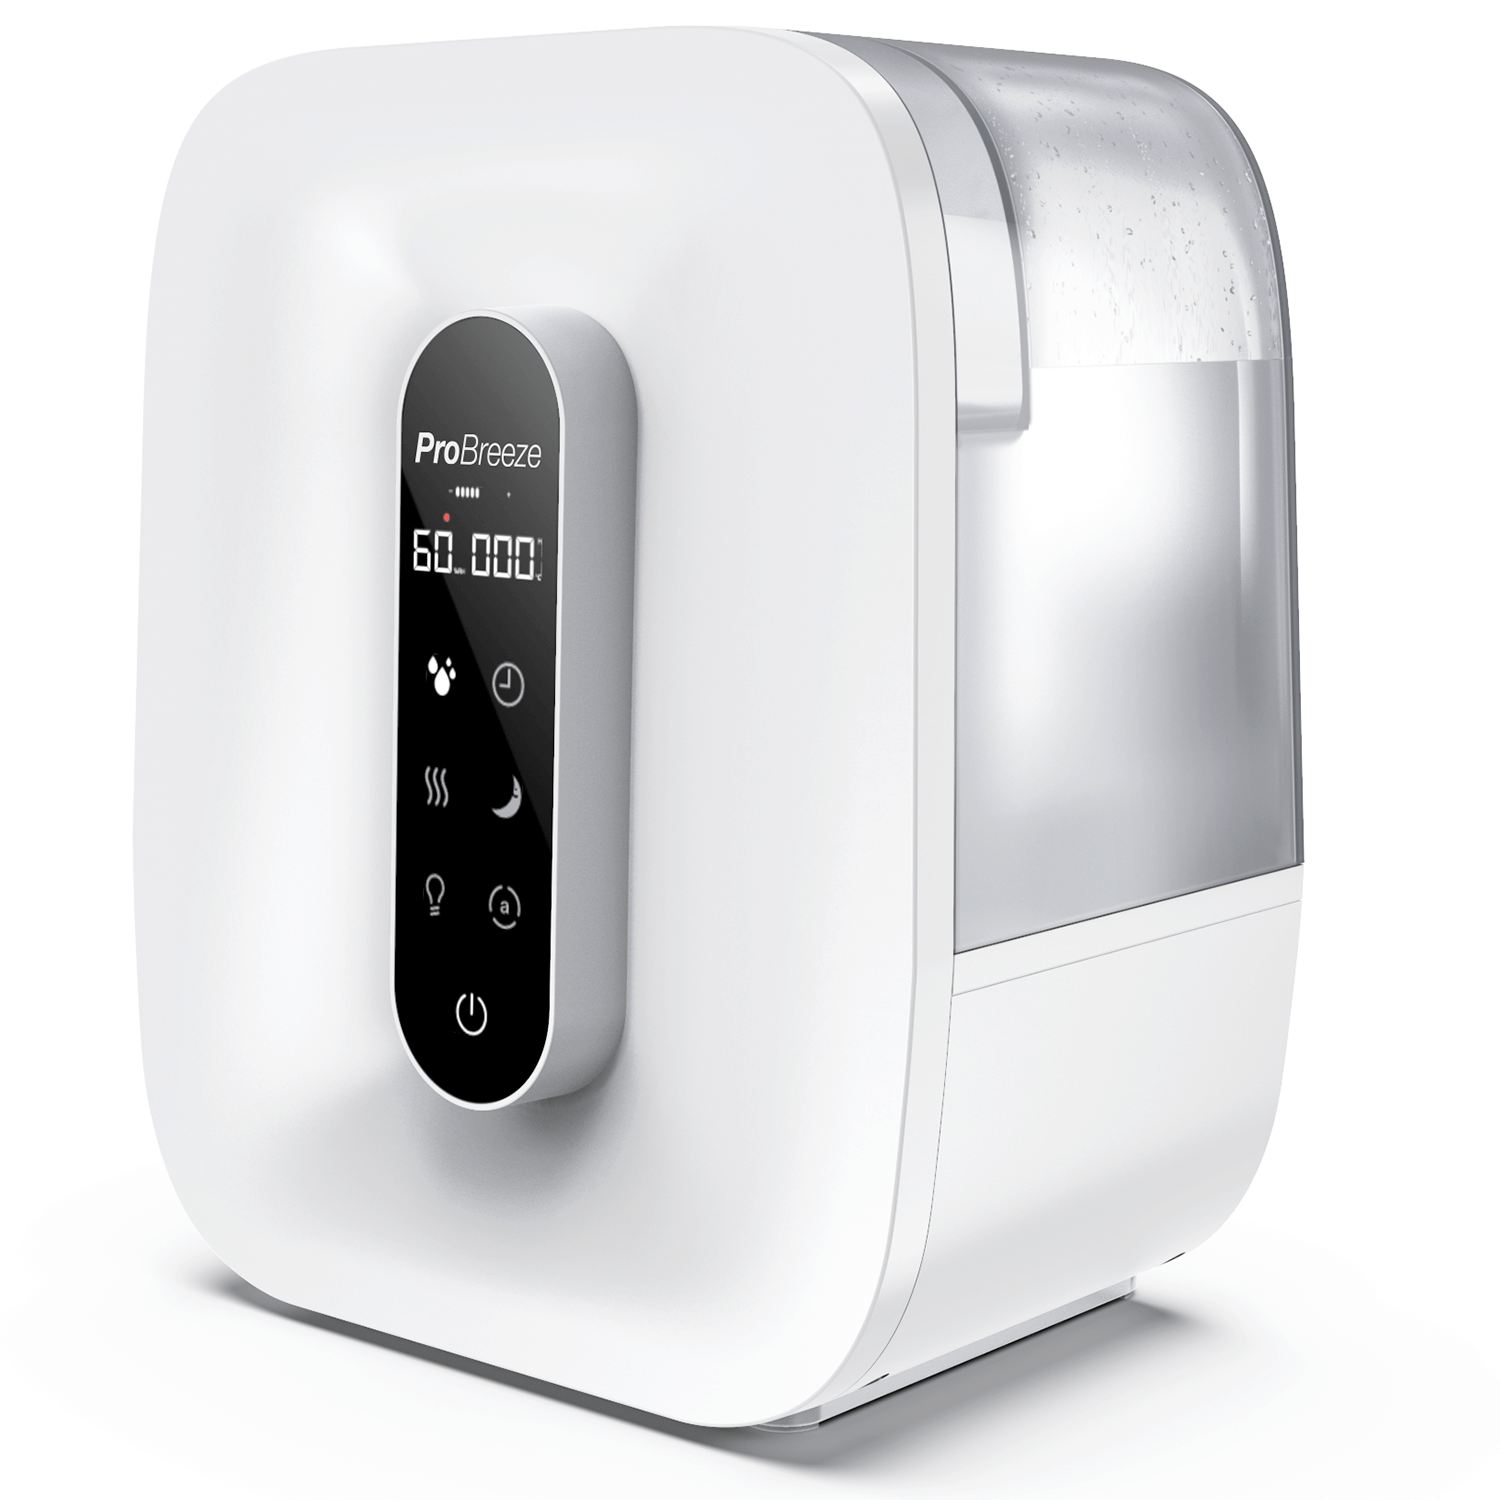 5.6 Litre Ultrasonic Humidifier | For Dry Air | Pro Breeze